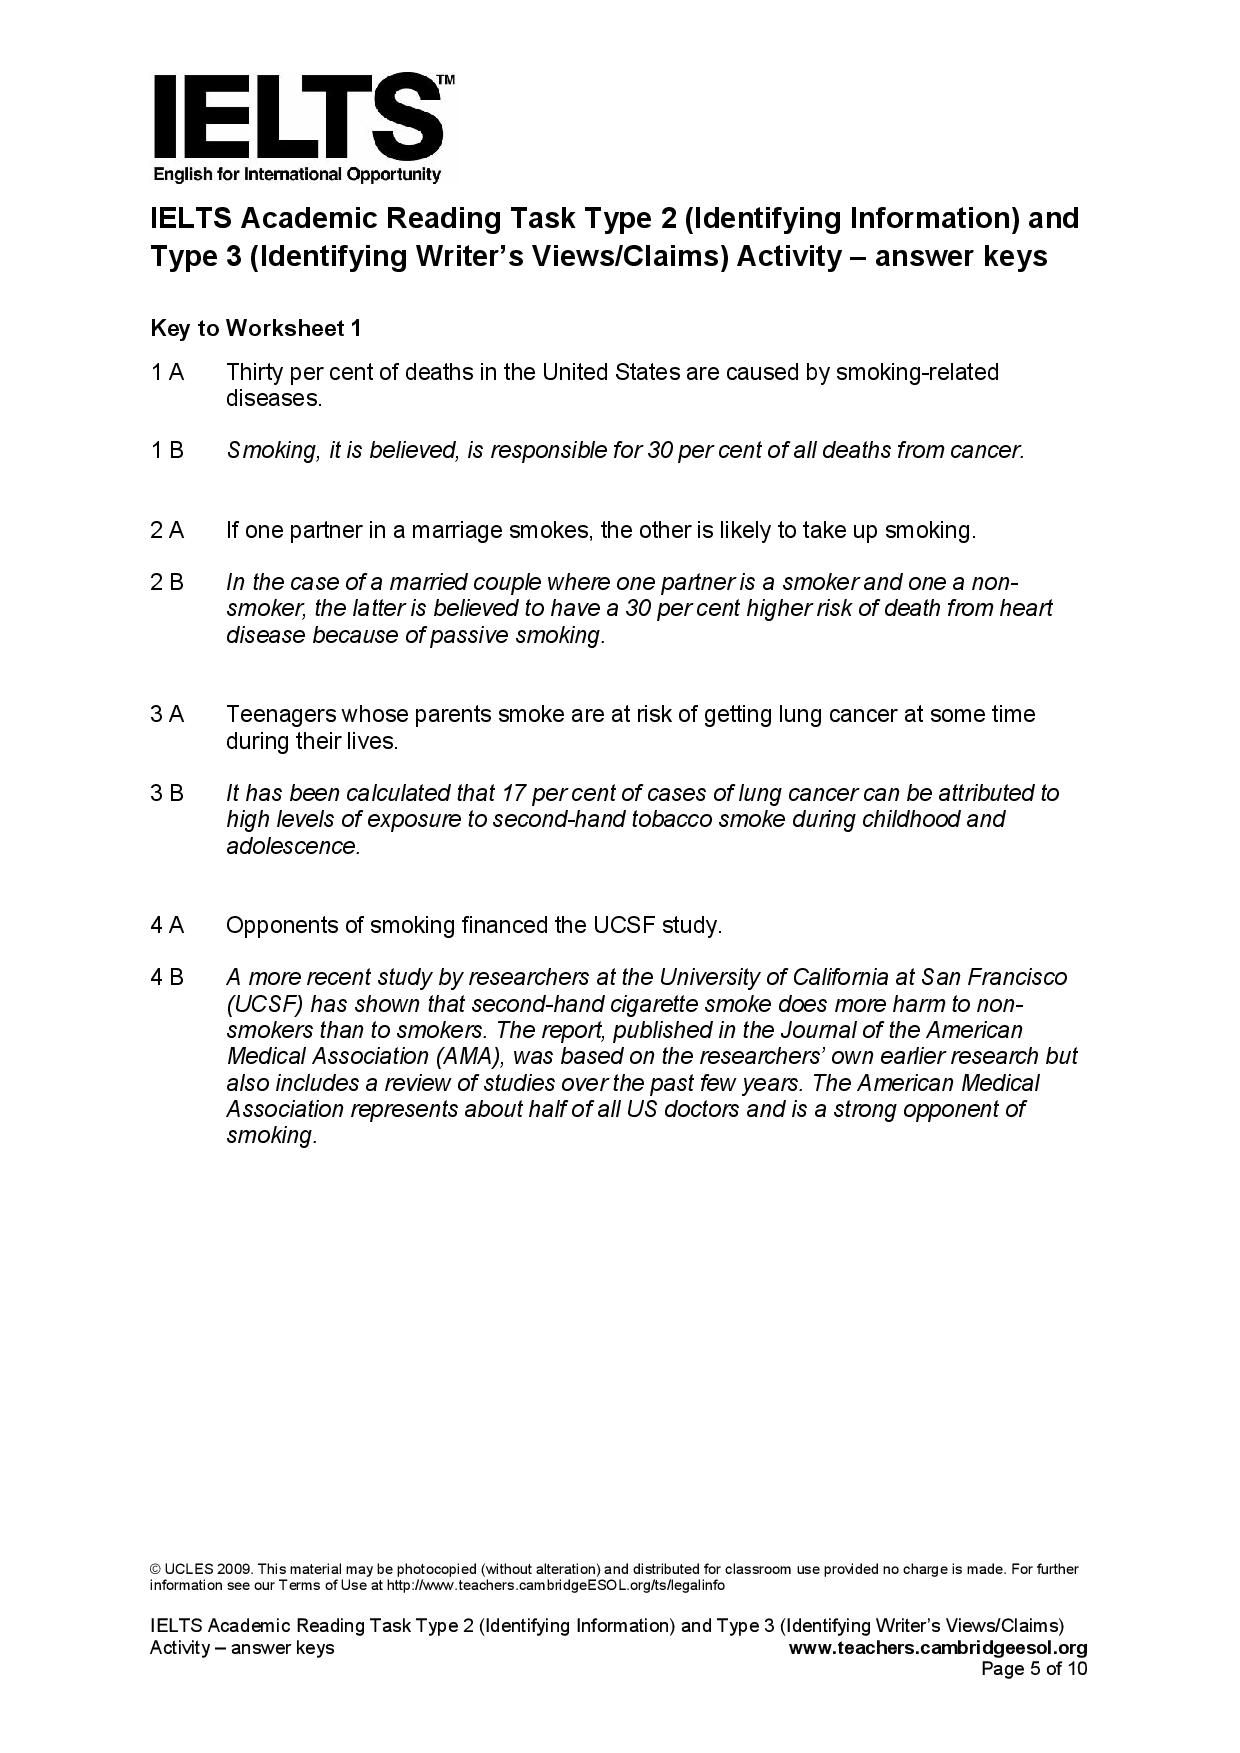 Ielts Academic Reading Task Type 2 Identifying Information And Type 3 Identifying Writer S